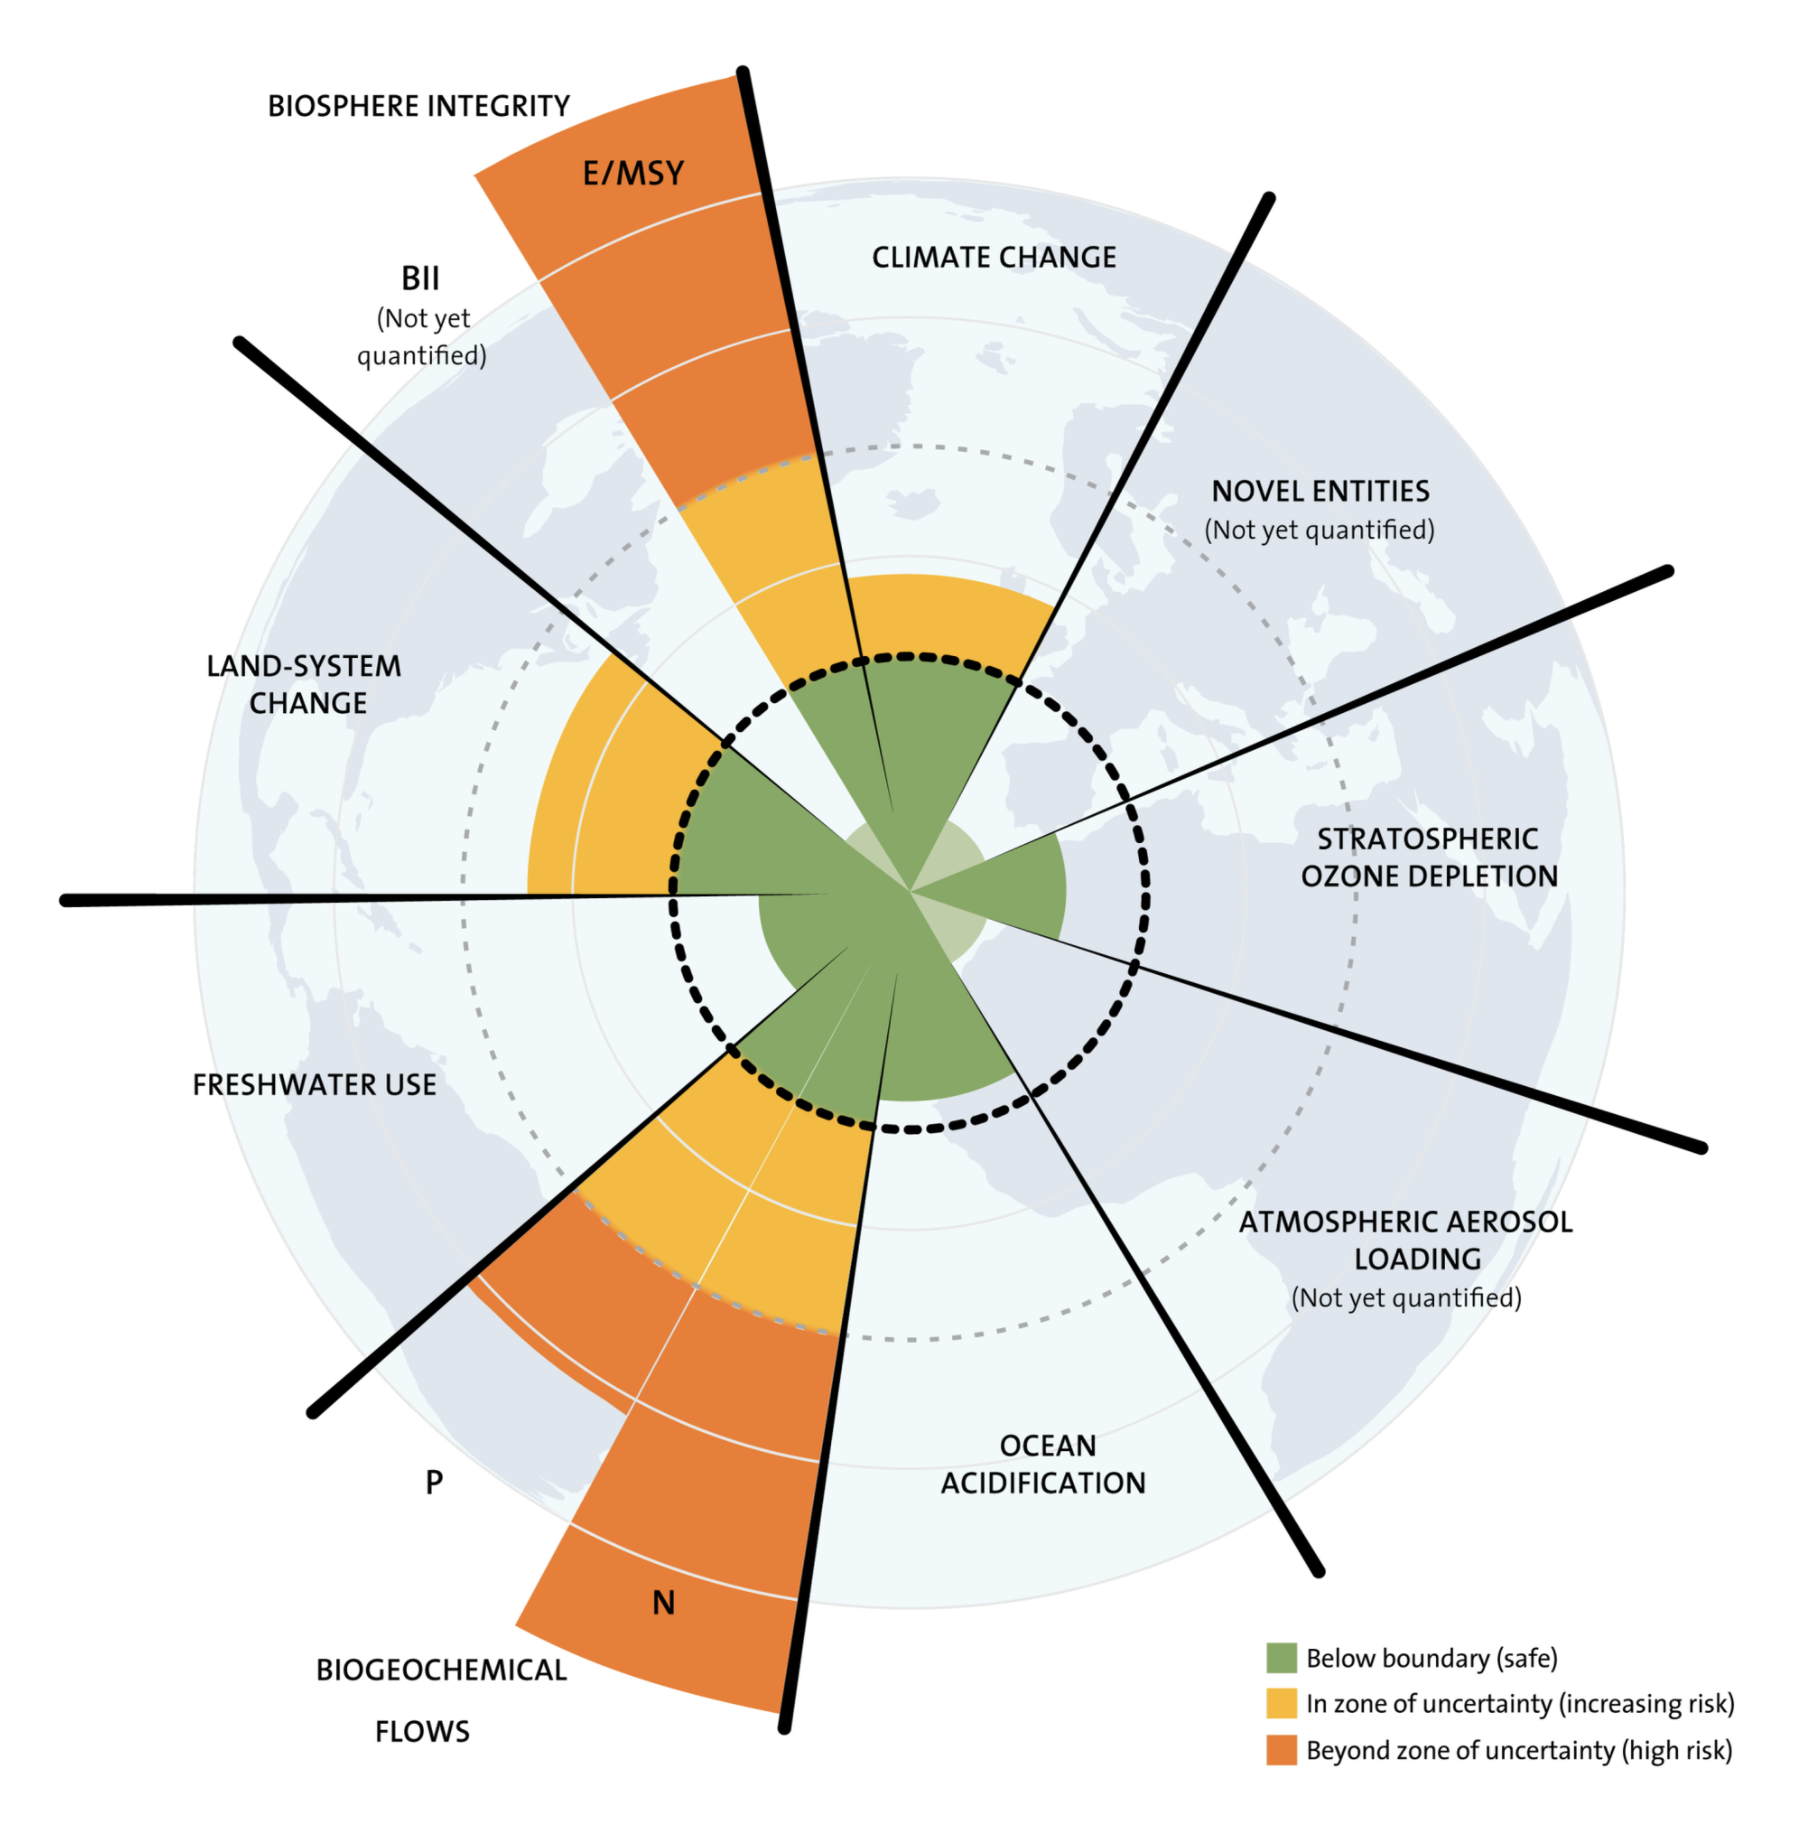 The nine planetary boundaries within which humanity can continue to develop and thrive